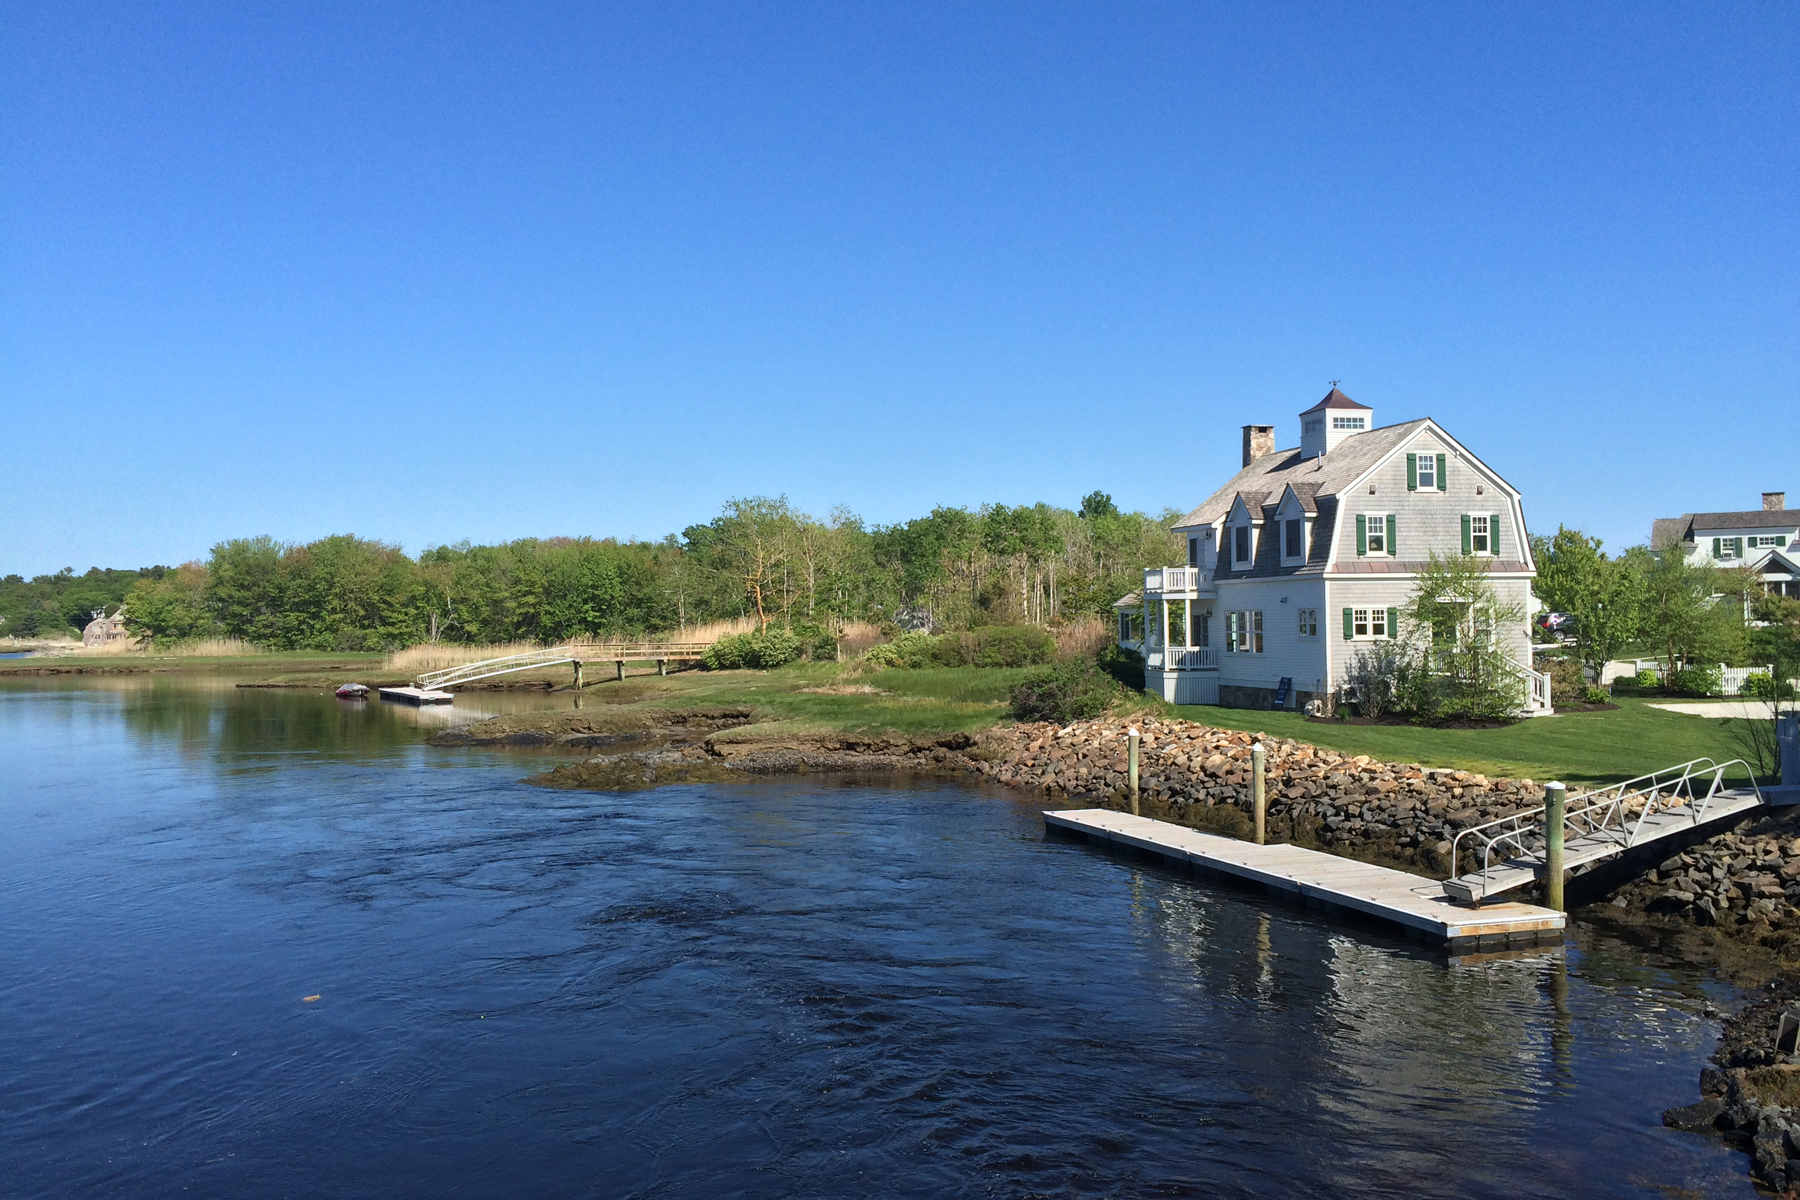 Single Family Home for Sale at Portside 4 Sea Grass Lane Kennebunk, Maine 04043 United States